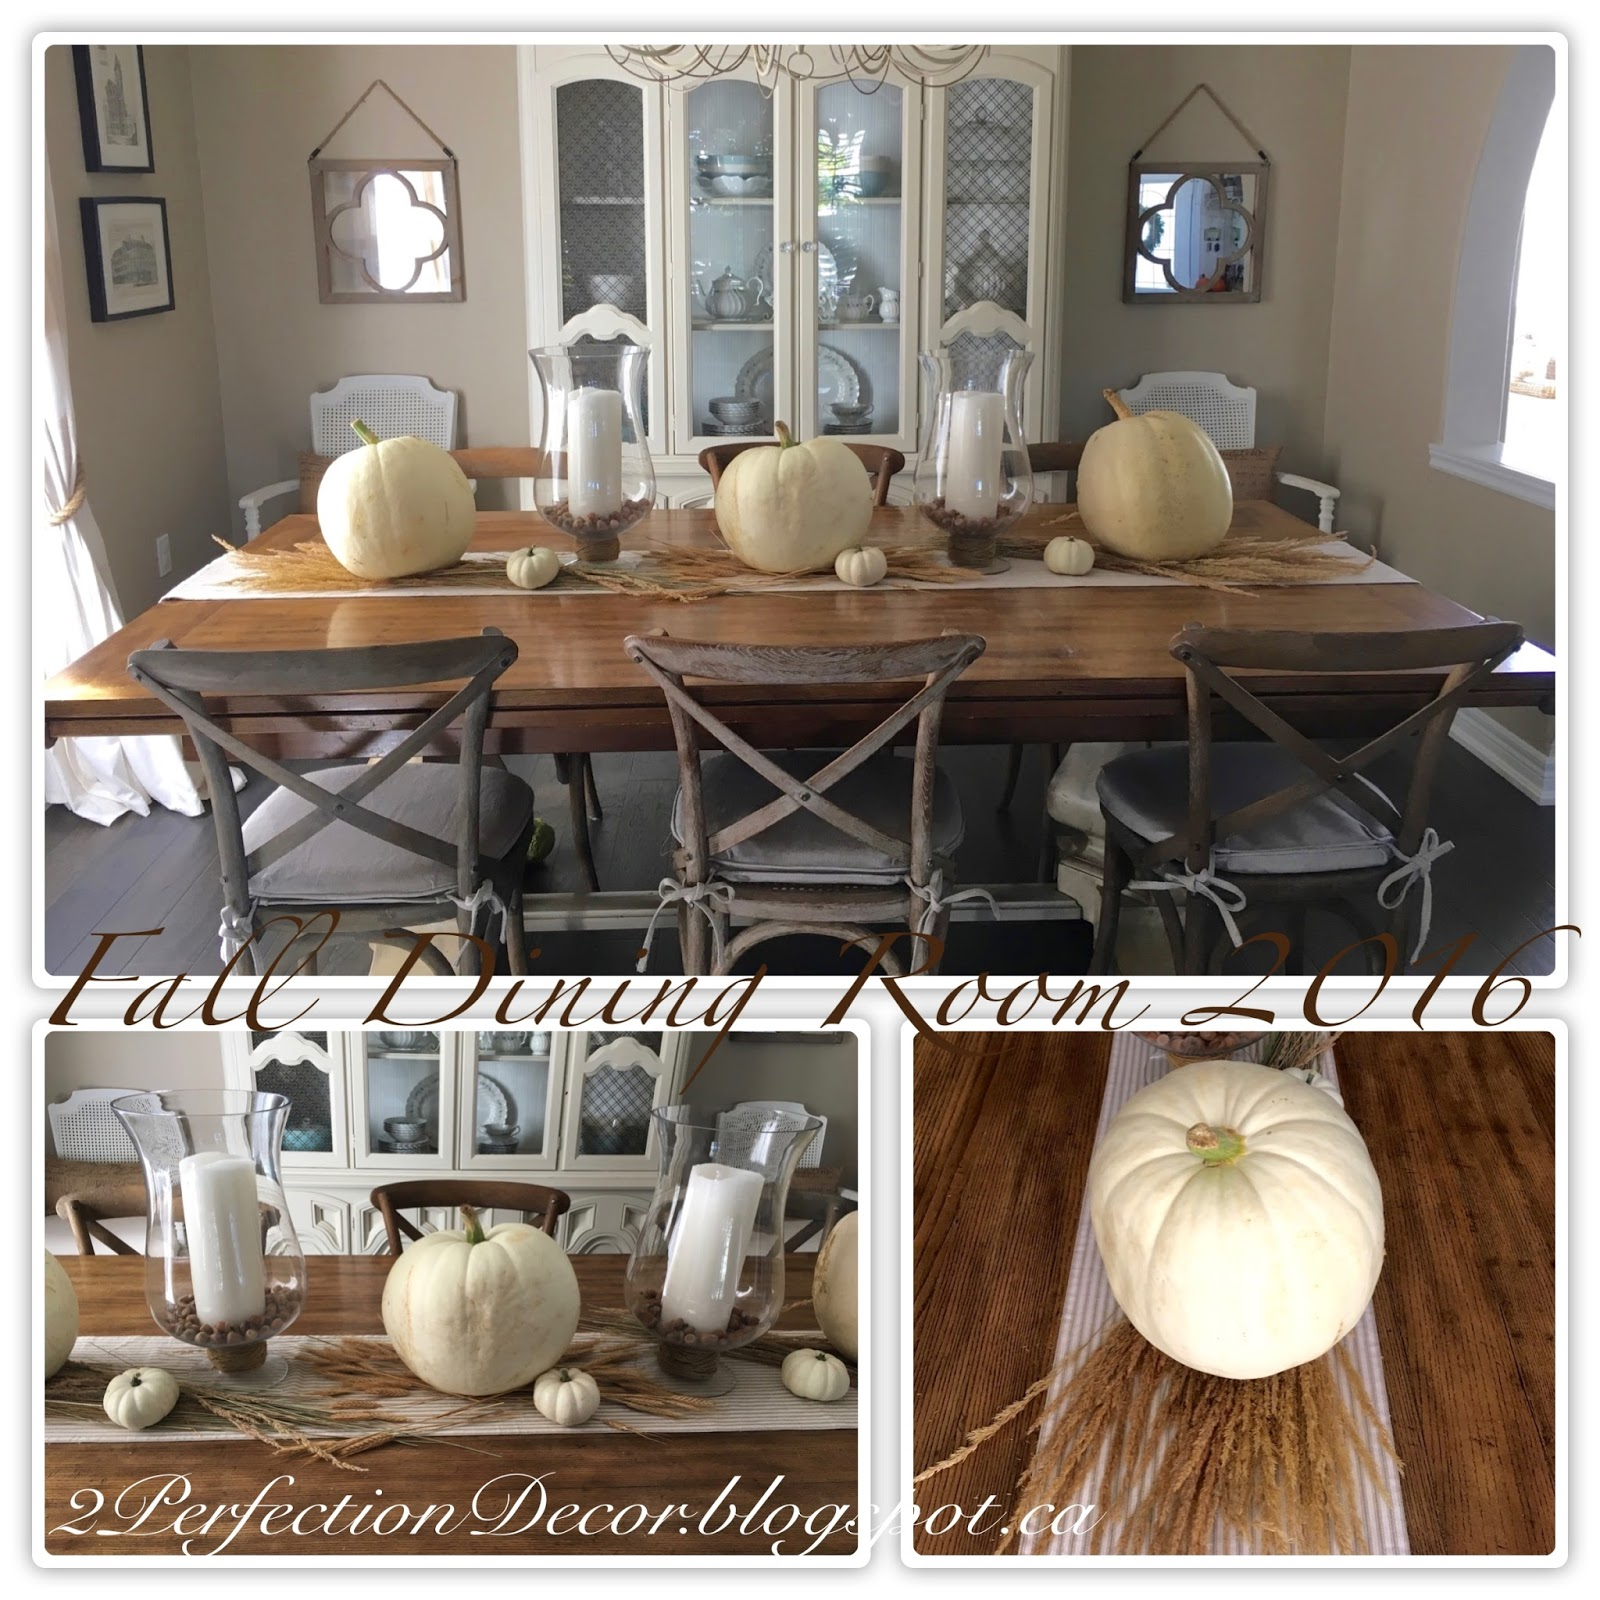 2perfection decor dining room decorated for fall